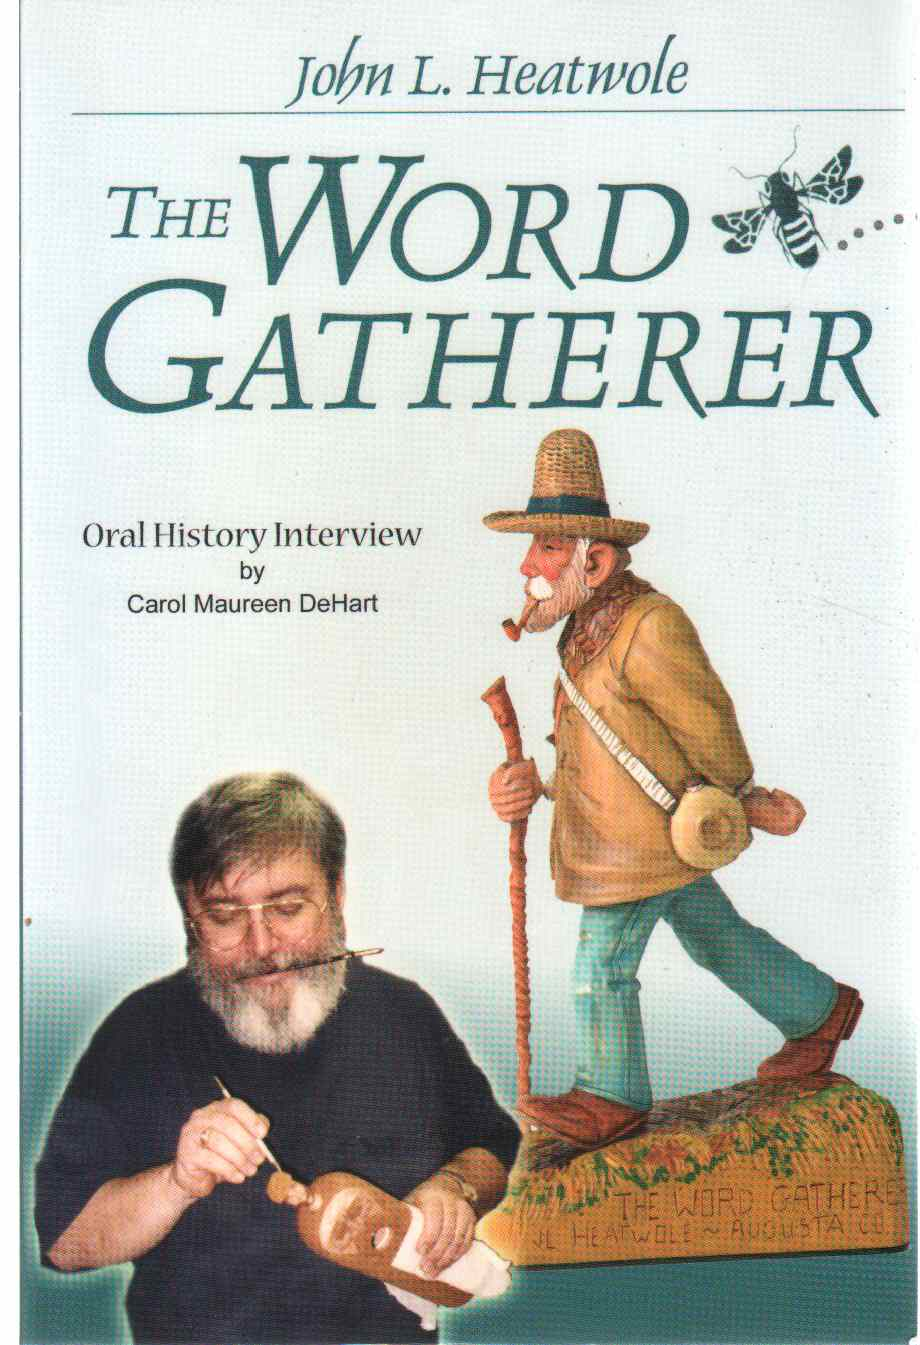 Image for JOHN L. HEATWOLE, THE WORD GATHERER Oral History Interview